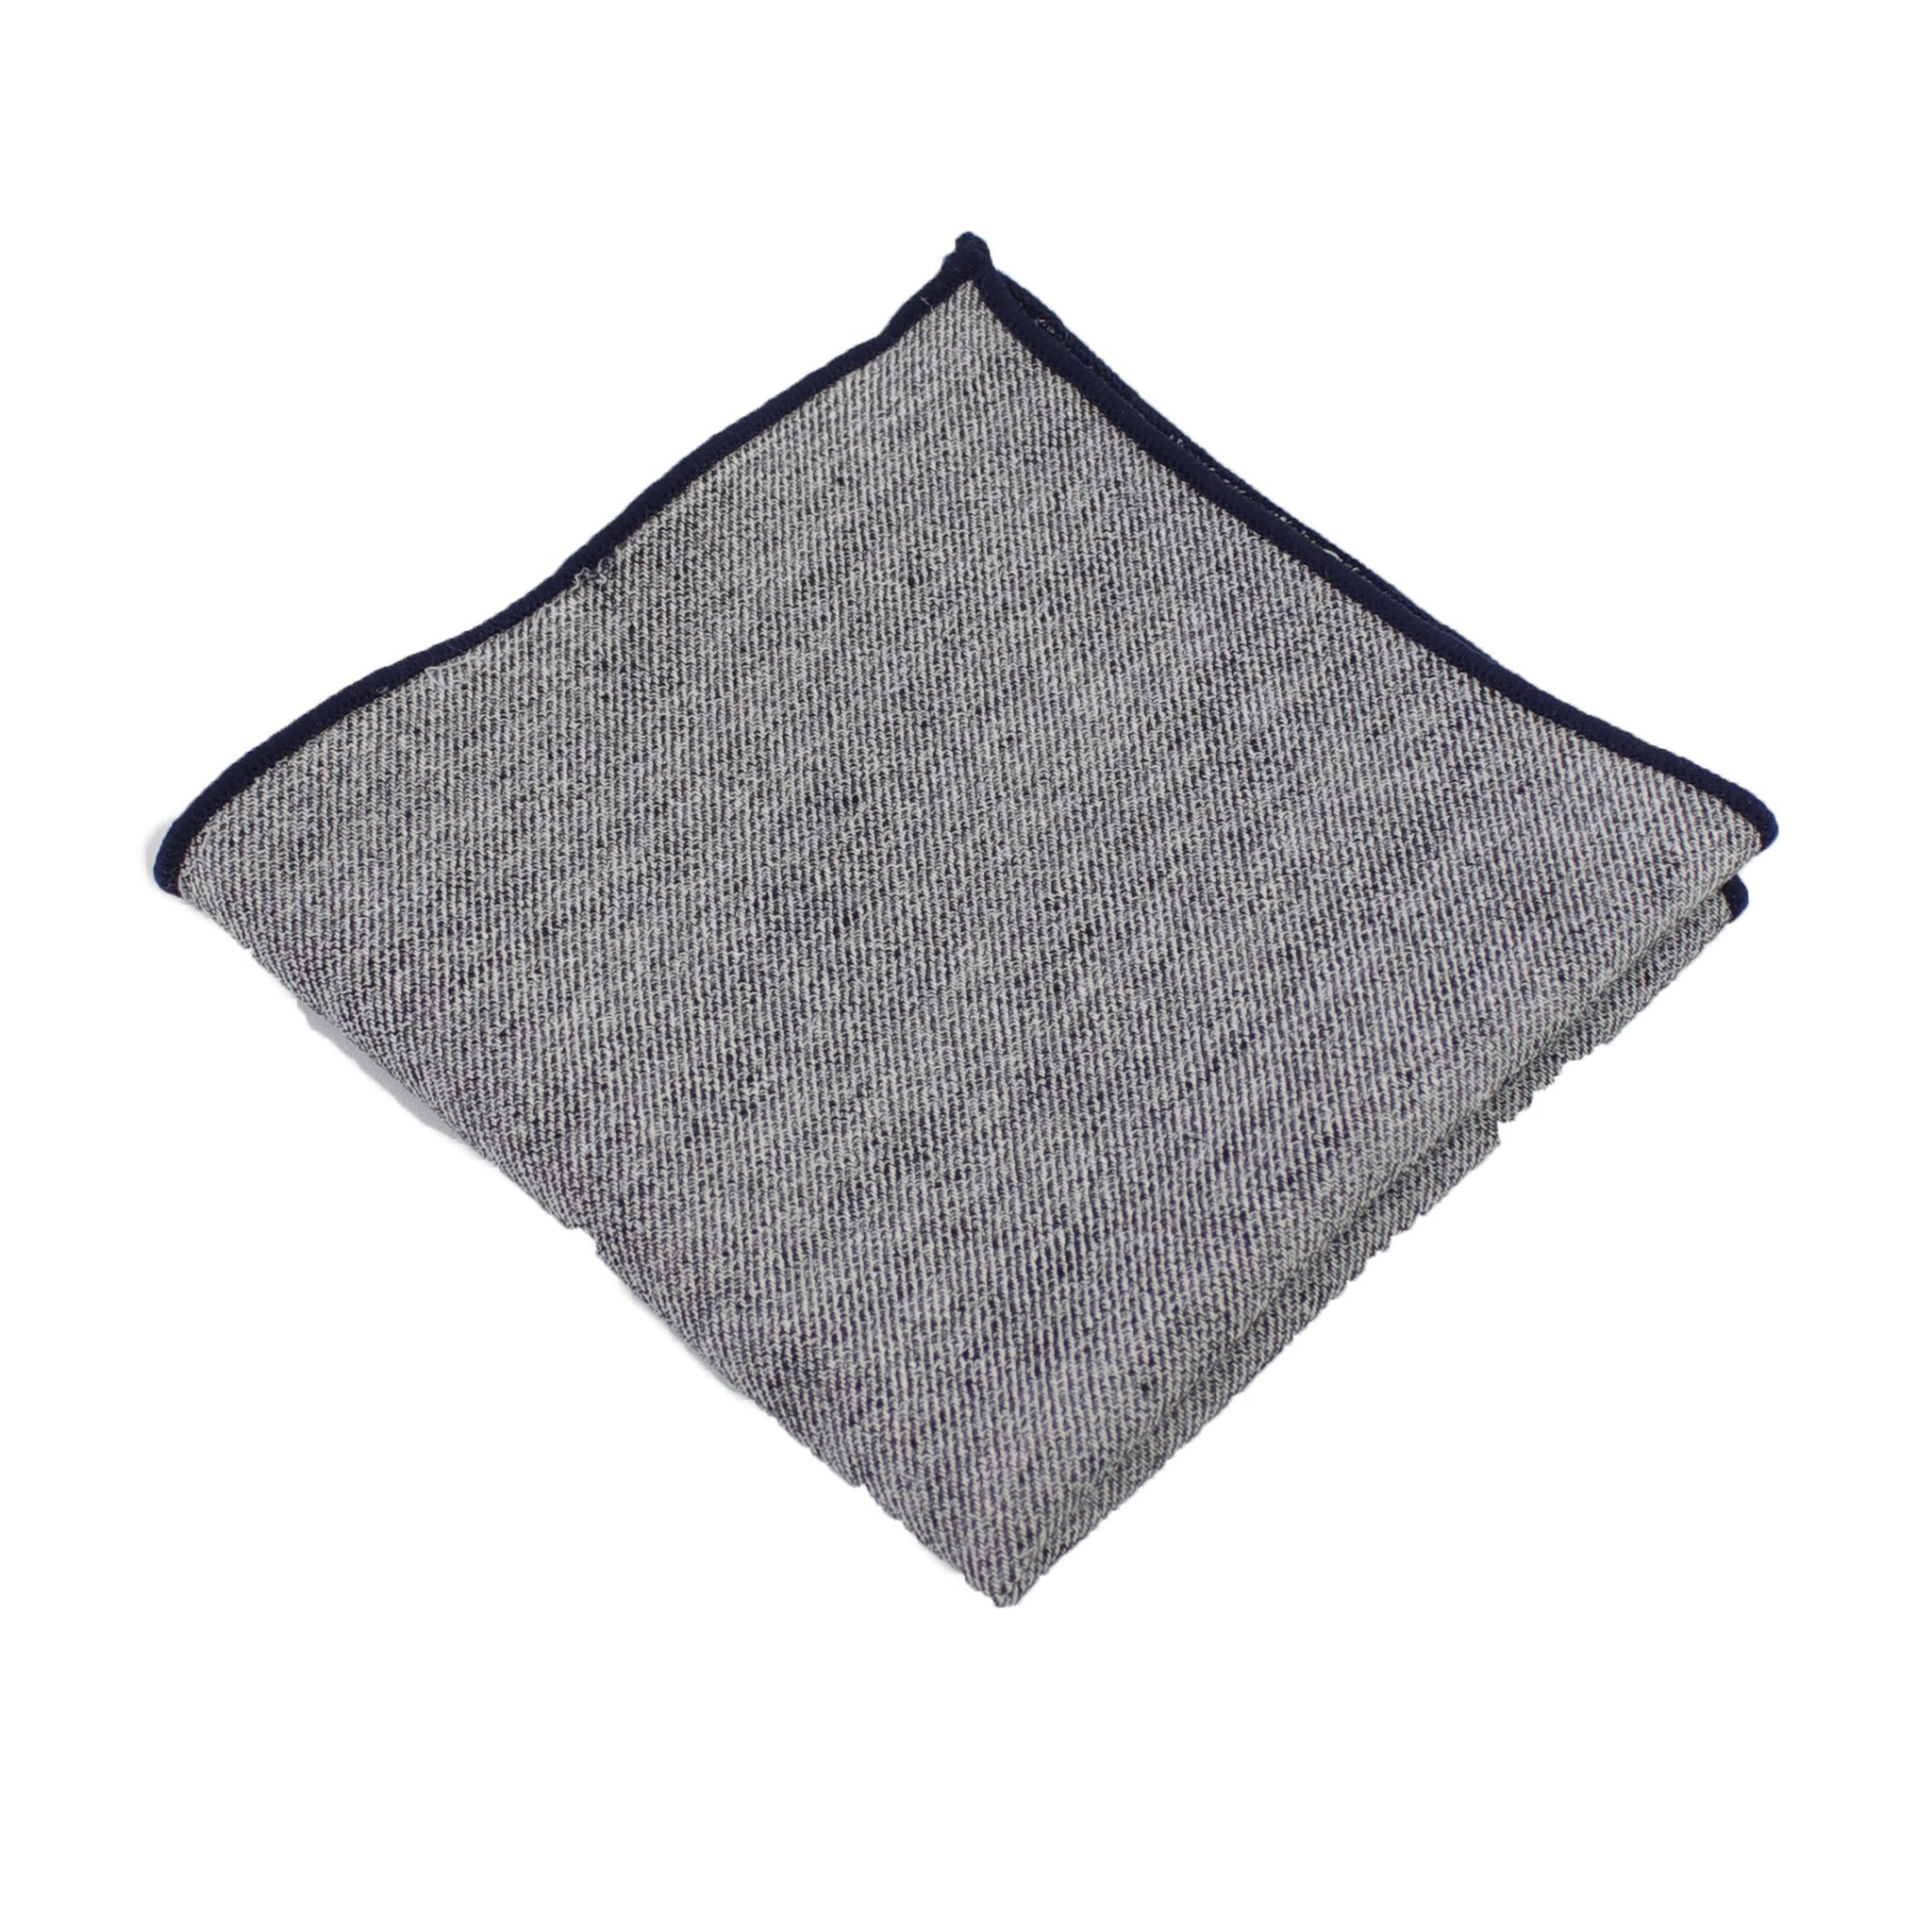 Black Cloud Pocket Square from DIBI